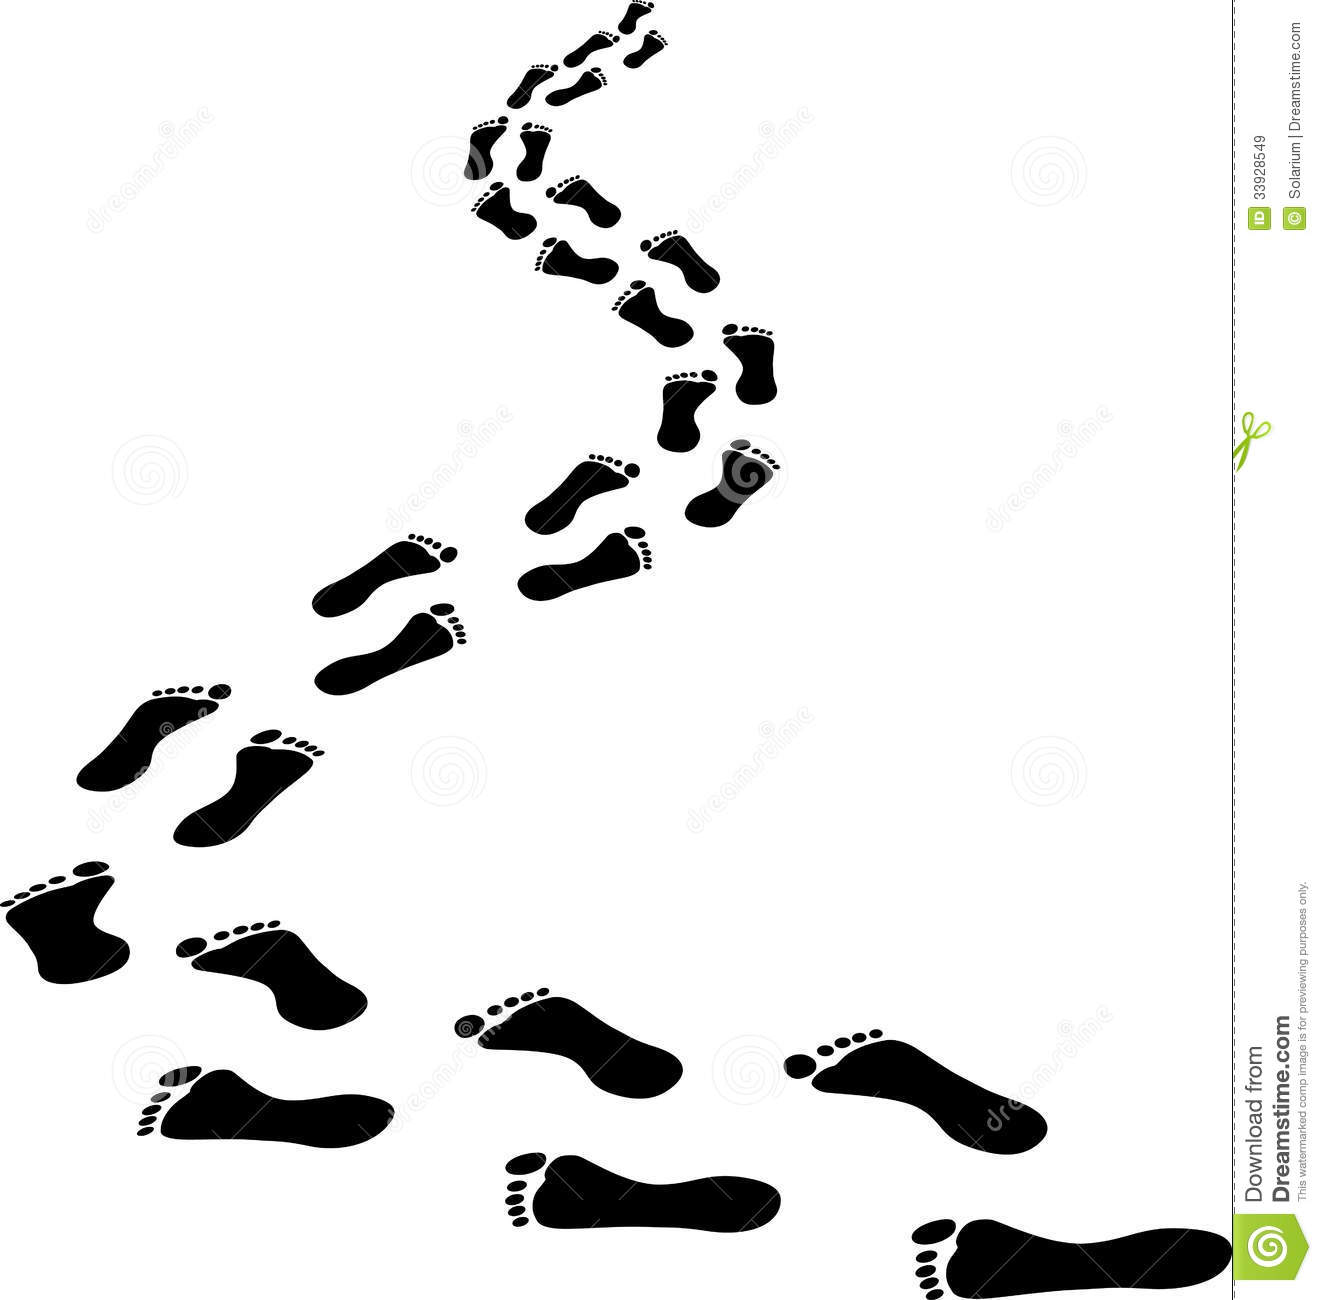 Footprints Royalty Free Stock Images - Image: 33928549